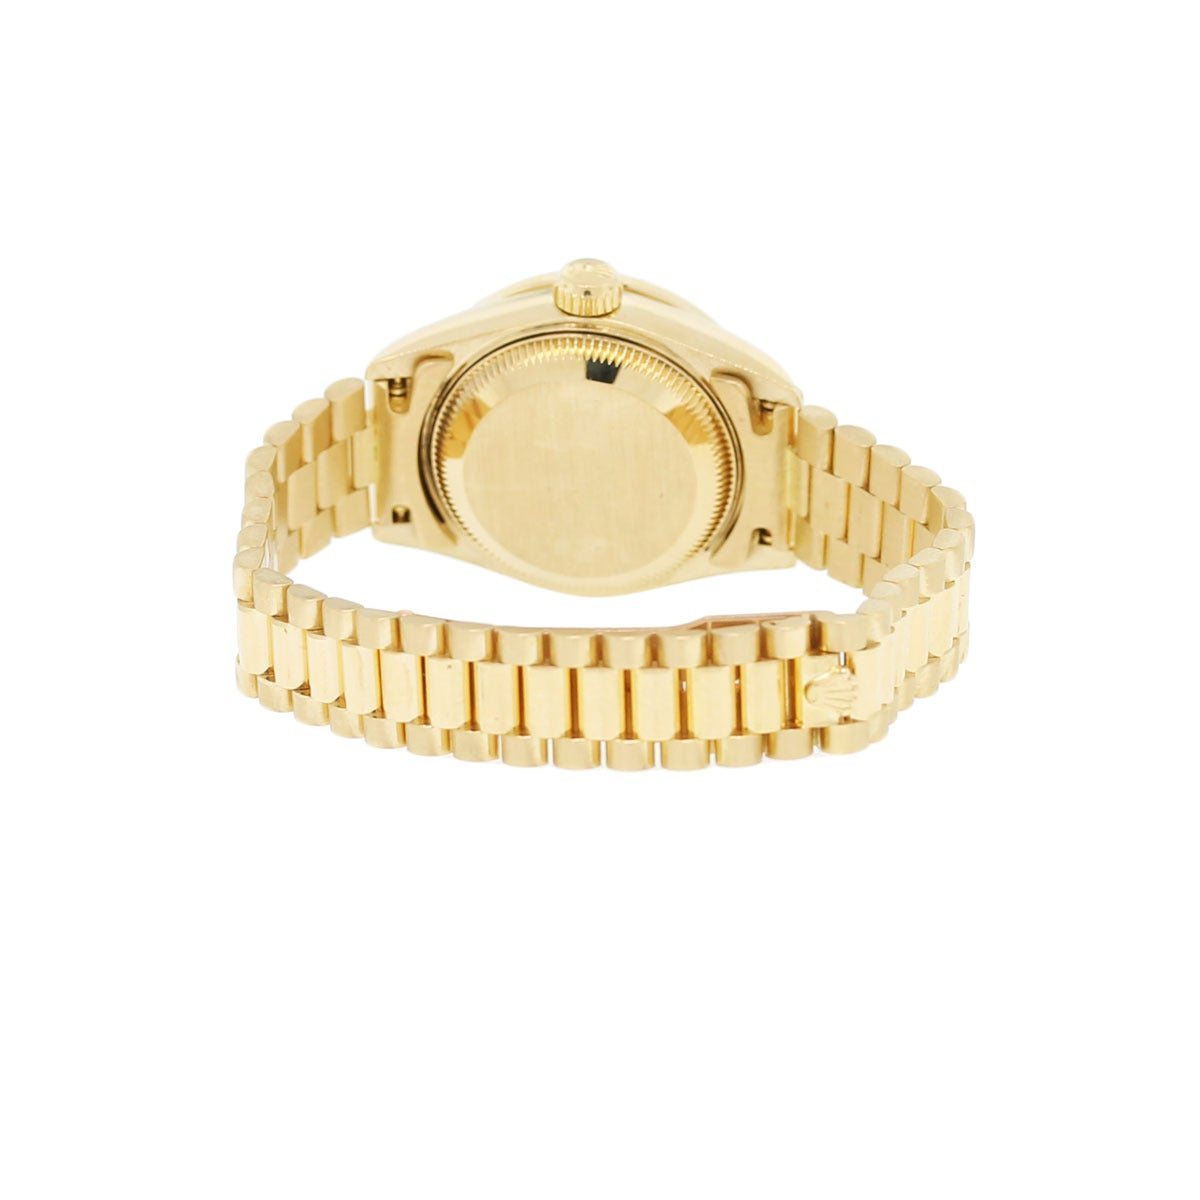 Rolex Lady's Yellow Gold Oyster Datejust Presidential Diamond Watch Ref 69158 5